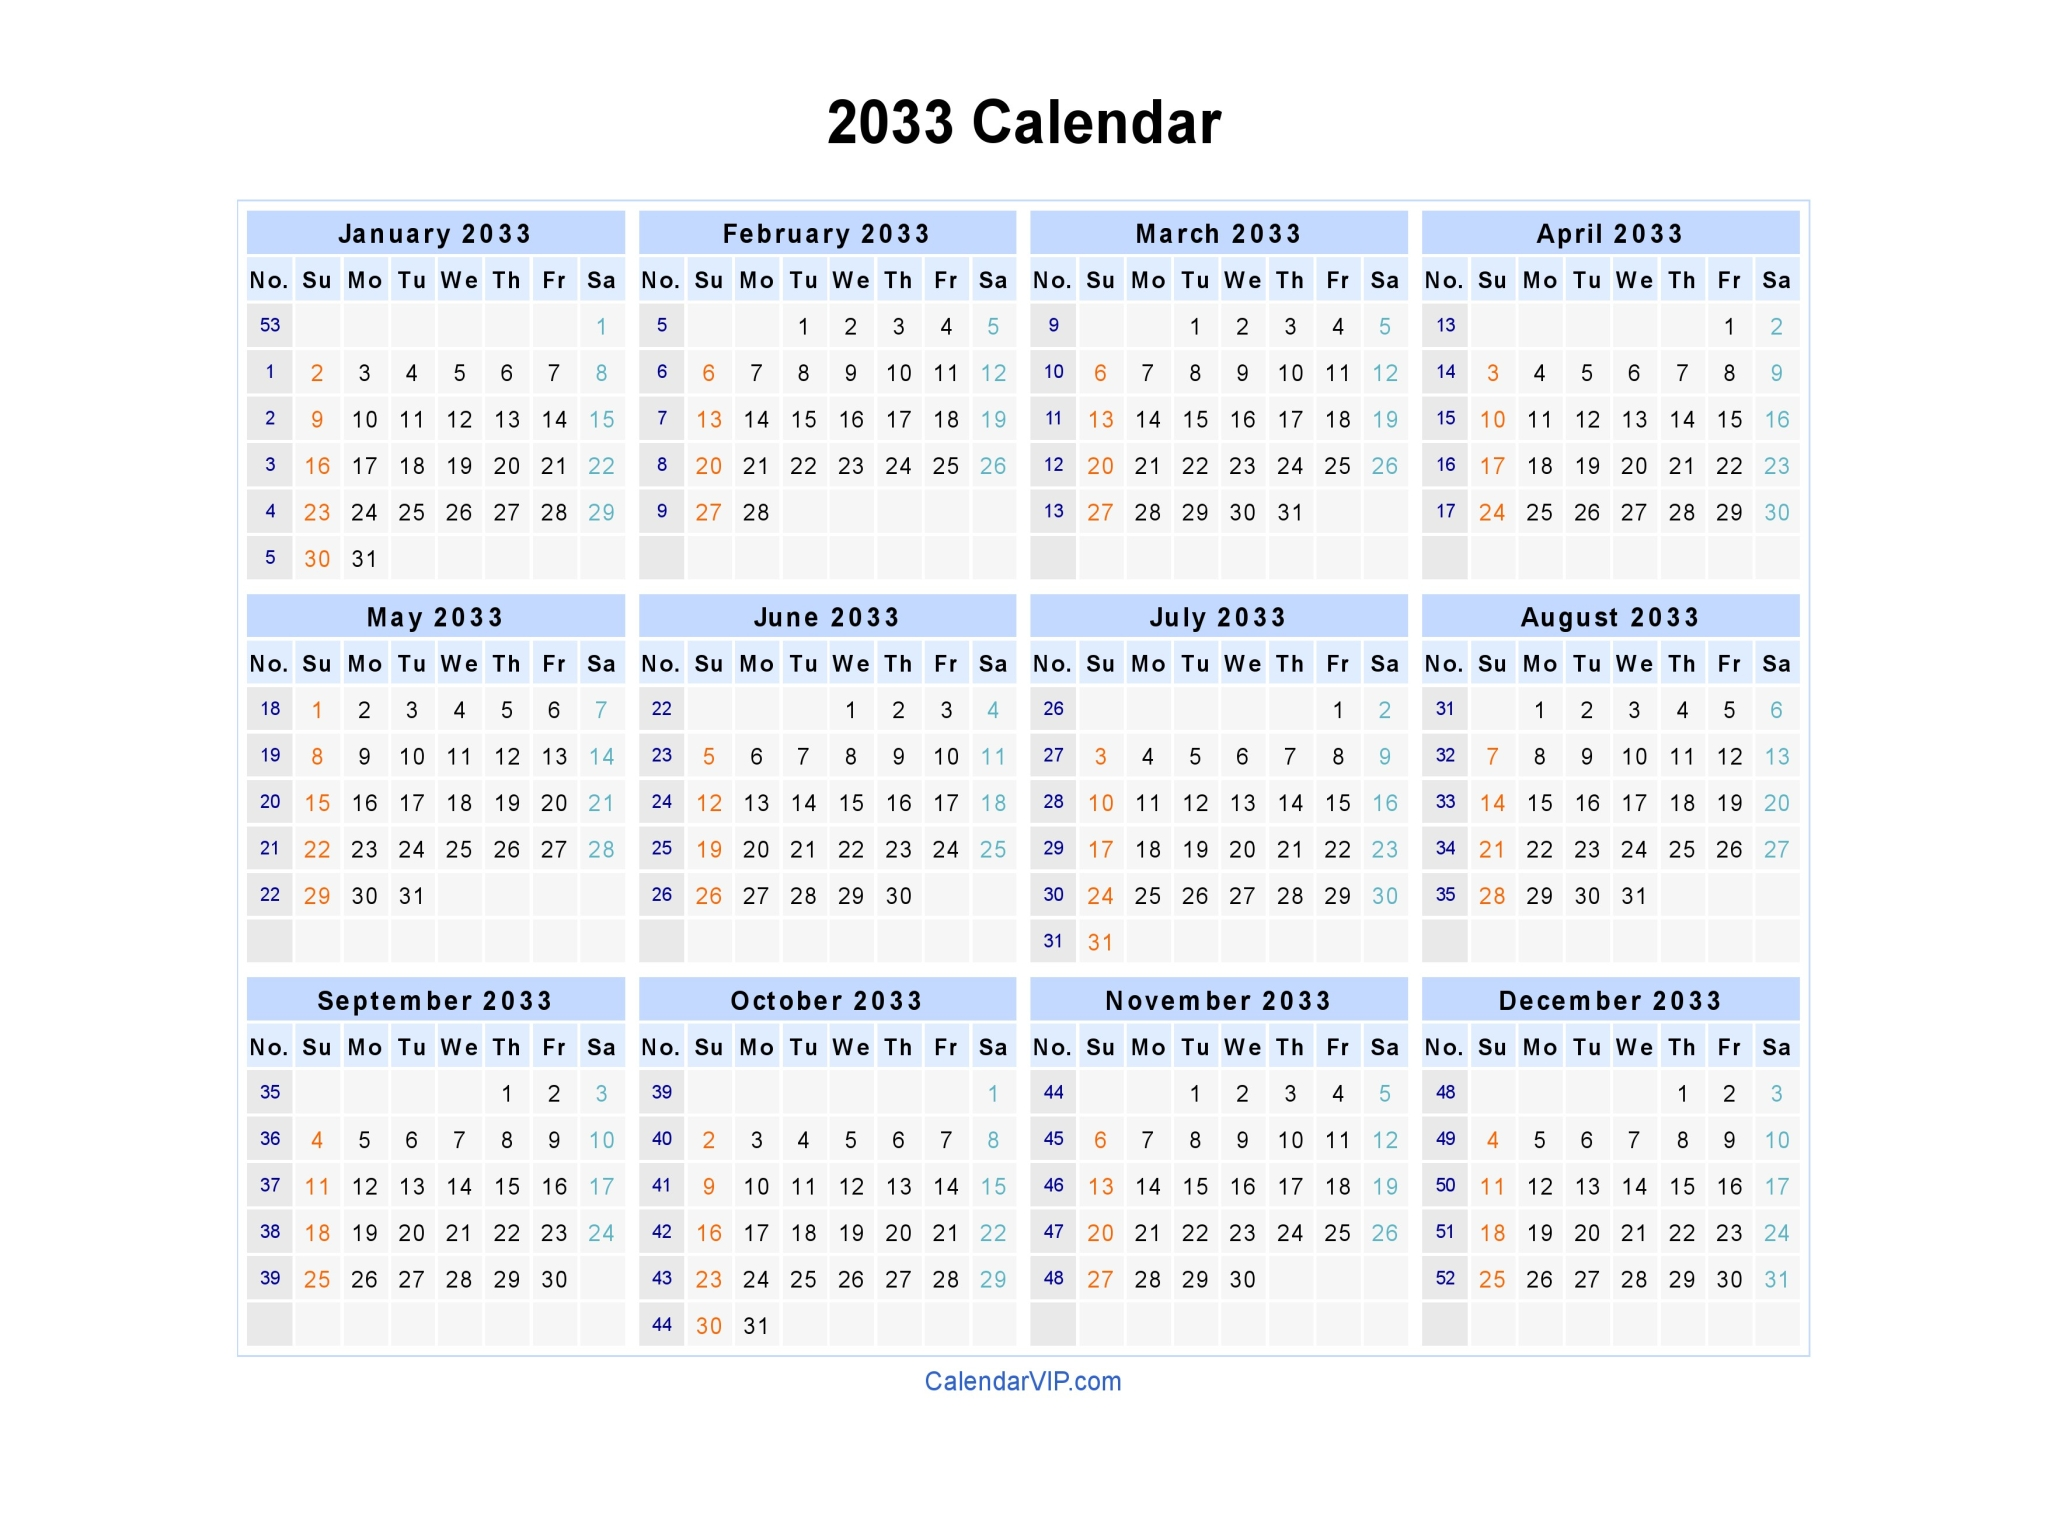 2014 Yearly Calendar Template In Word 2014 Calendar Pdf 13 Free Printable Calendar Templates 2033 Calendar Blank Printable Calendar Template In Pdf